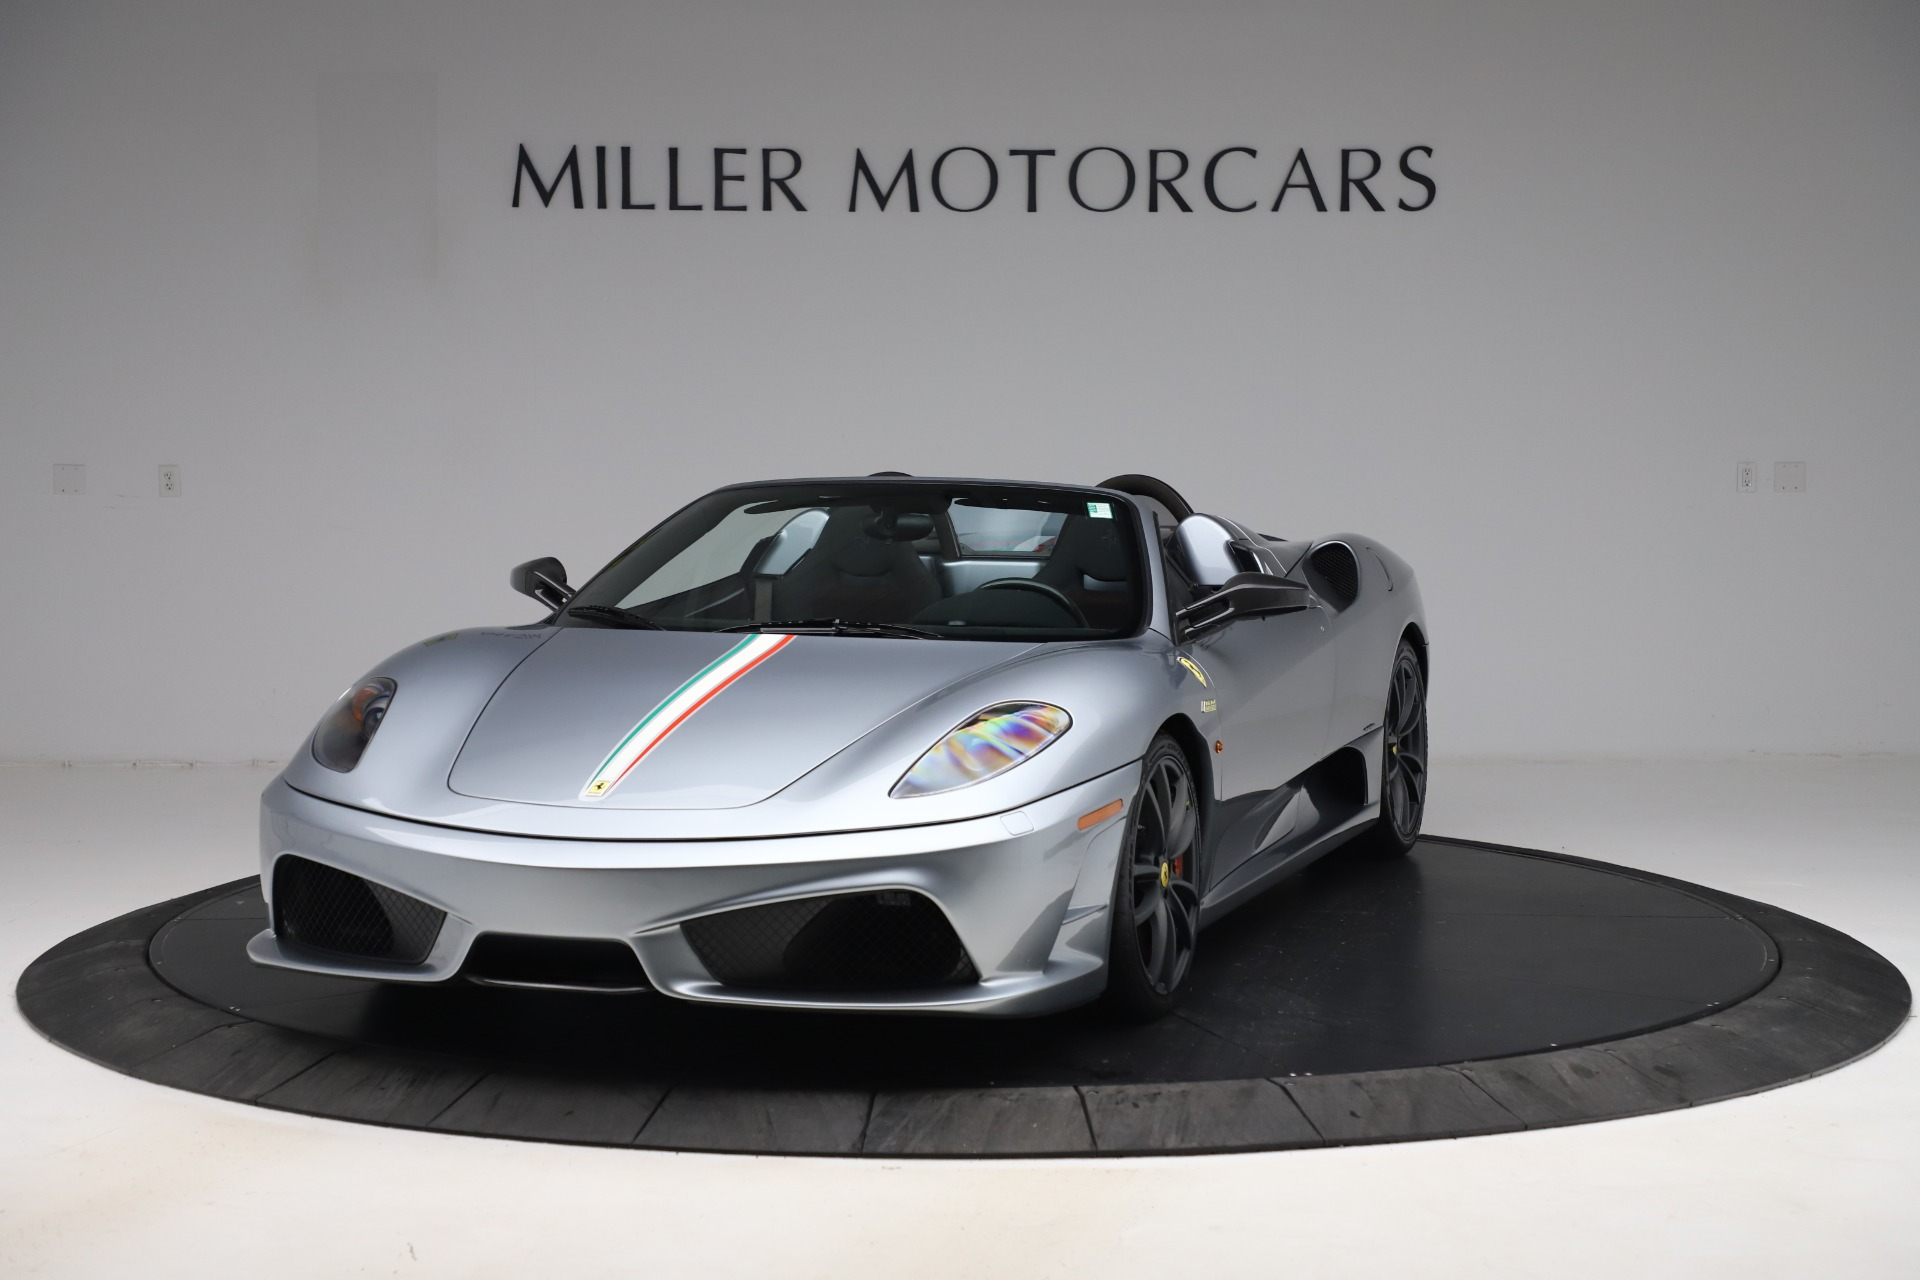 Used 2009 Ferrari 430 Scuderia Spider 16M for sale $322,900 at Aston Martin of Greenwich in Greenwich CT 06830 1